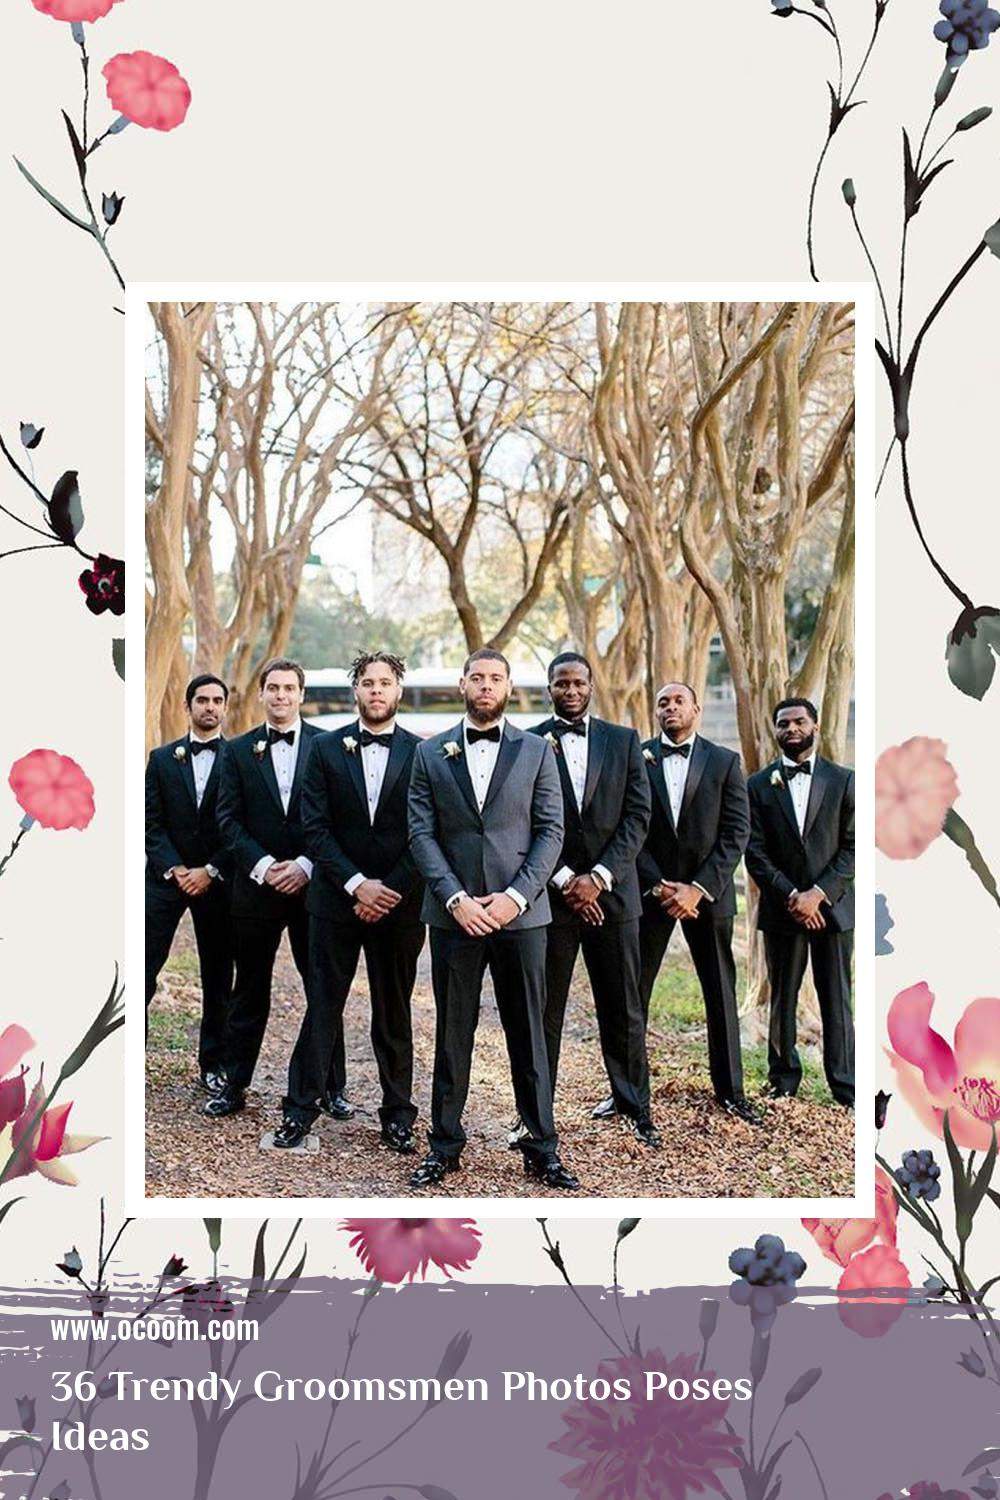 36 Trendy Groomsmen Photos Poses Ideas 24